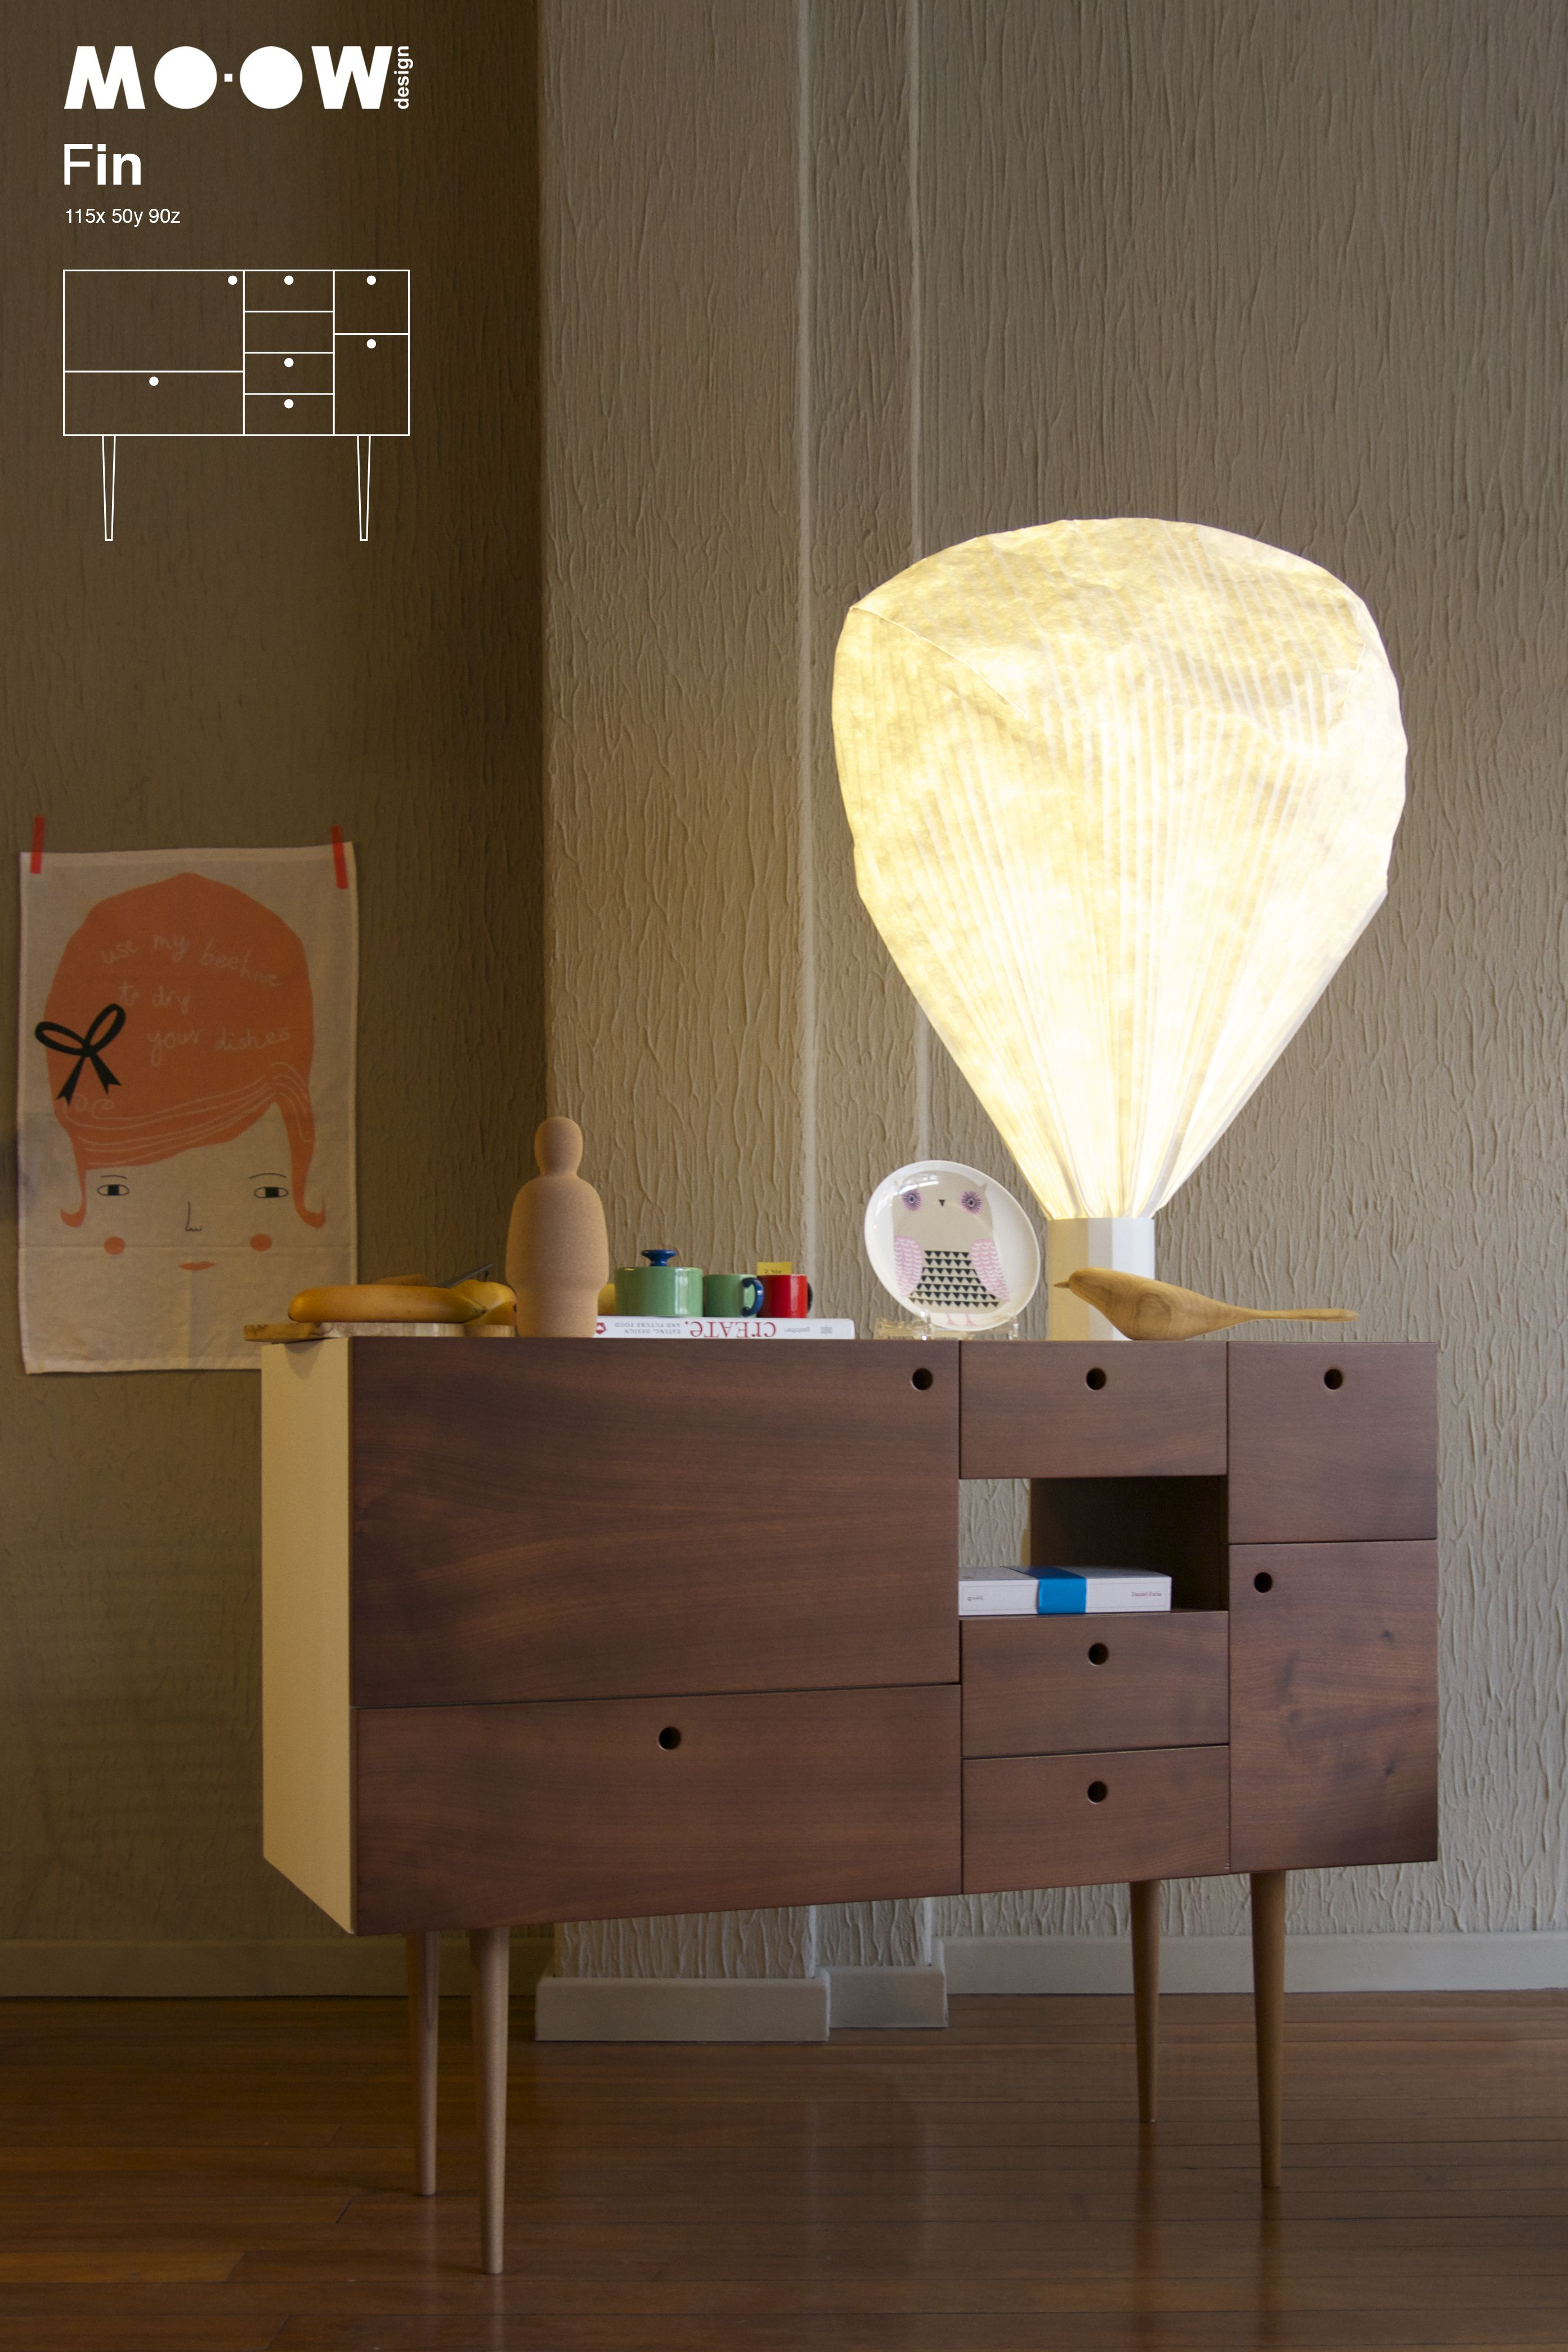 MO-OW Fin  at Mundano store, Oporto  http://mo-ow.com/MoProducts_Storage_Ffin.html